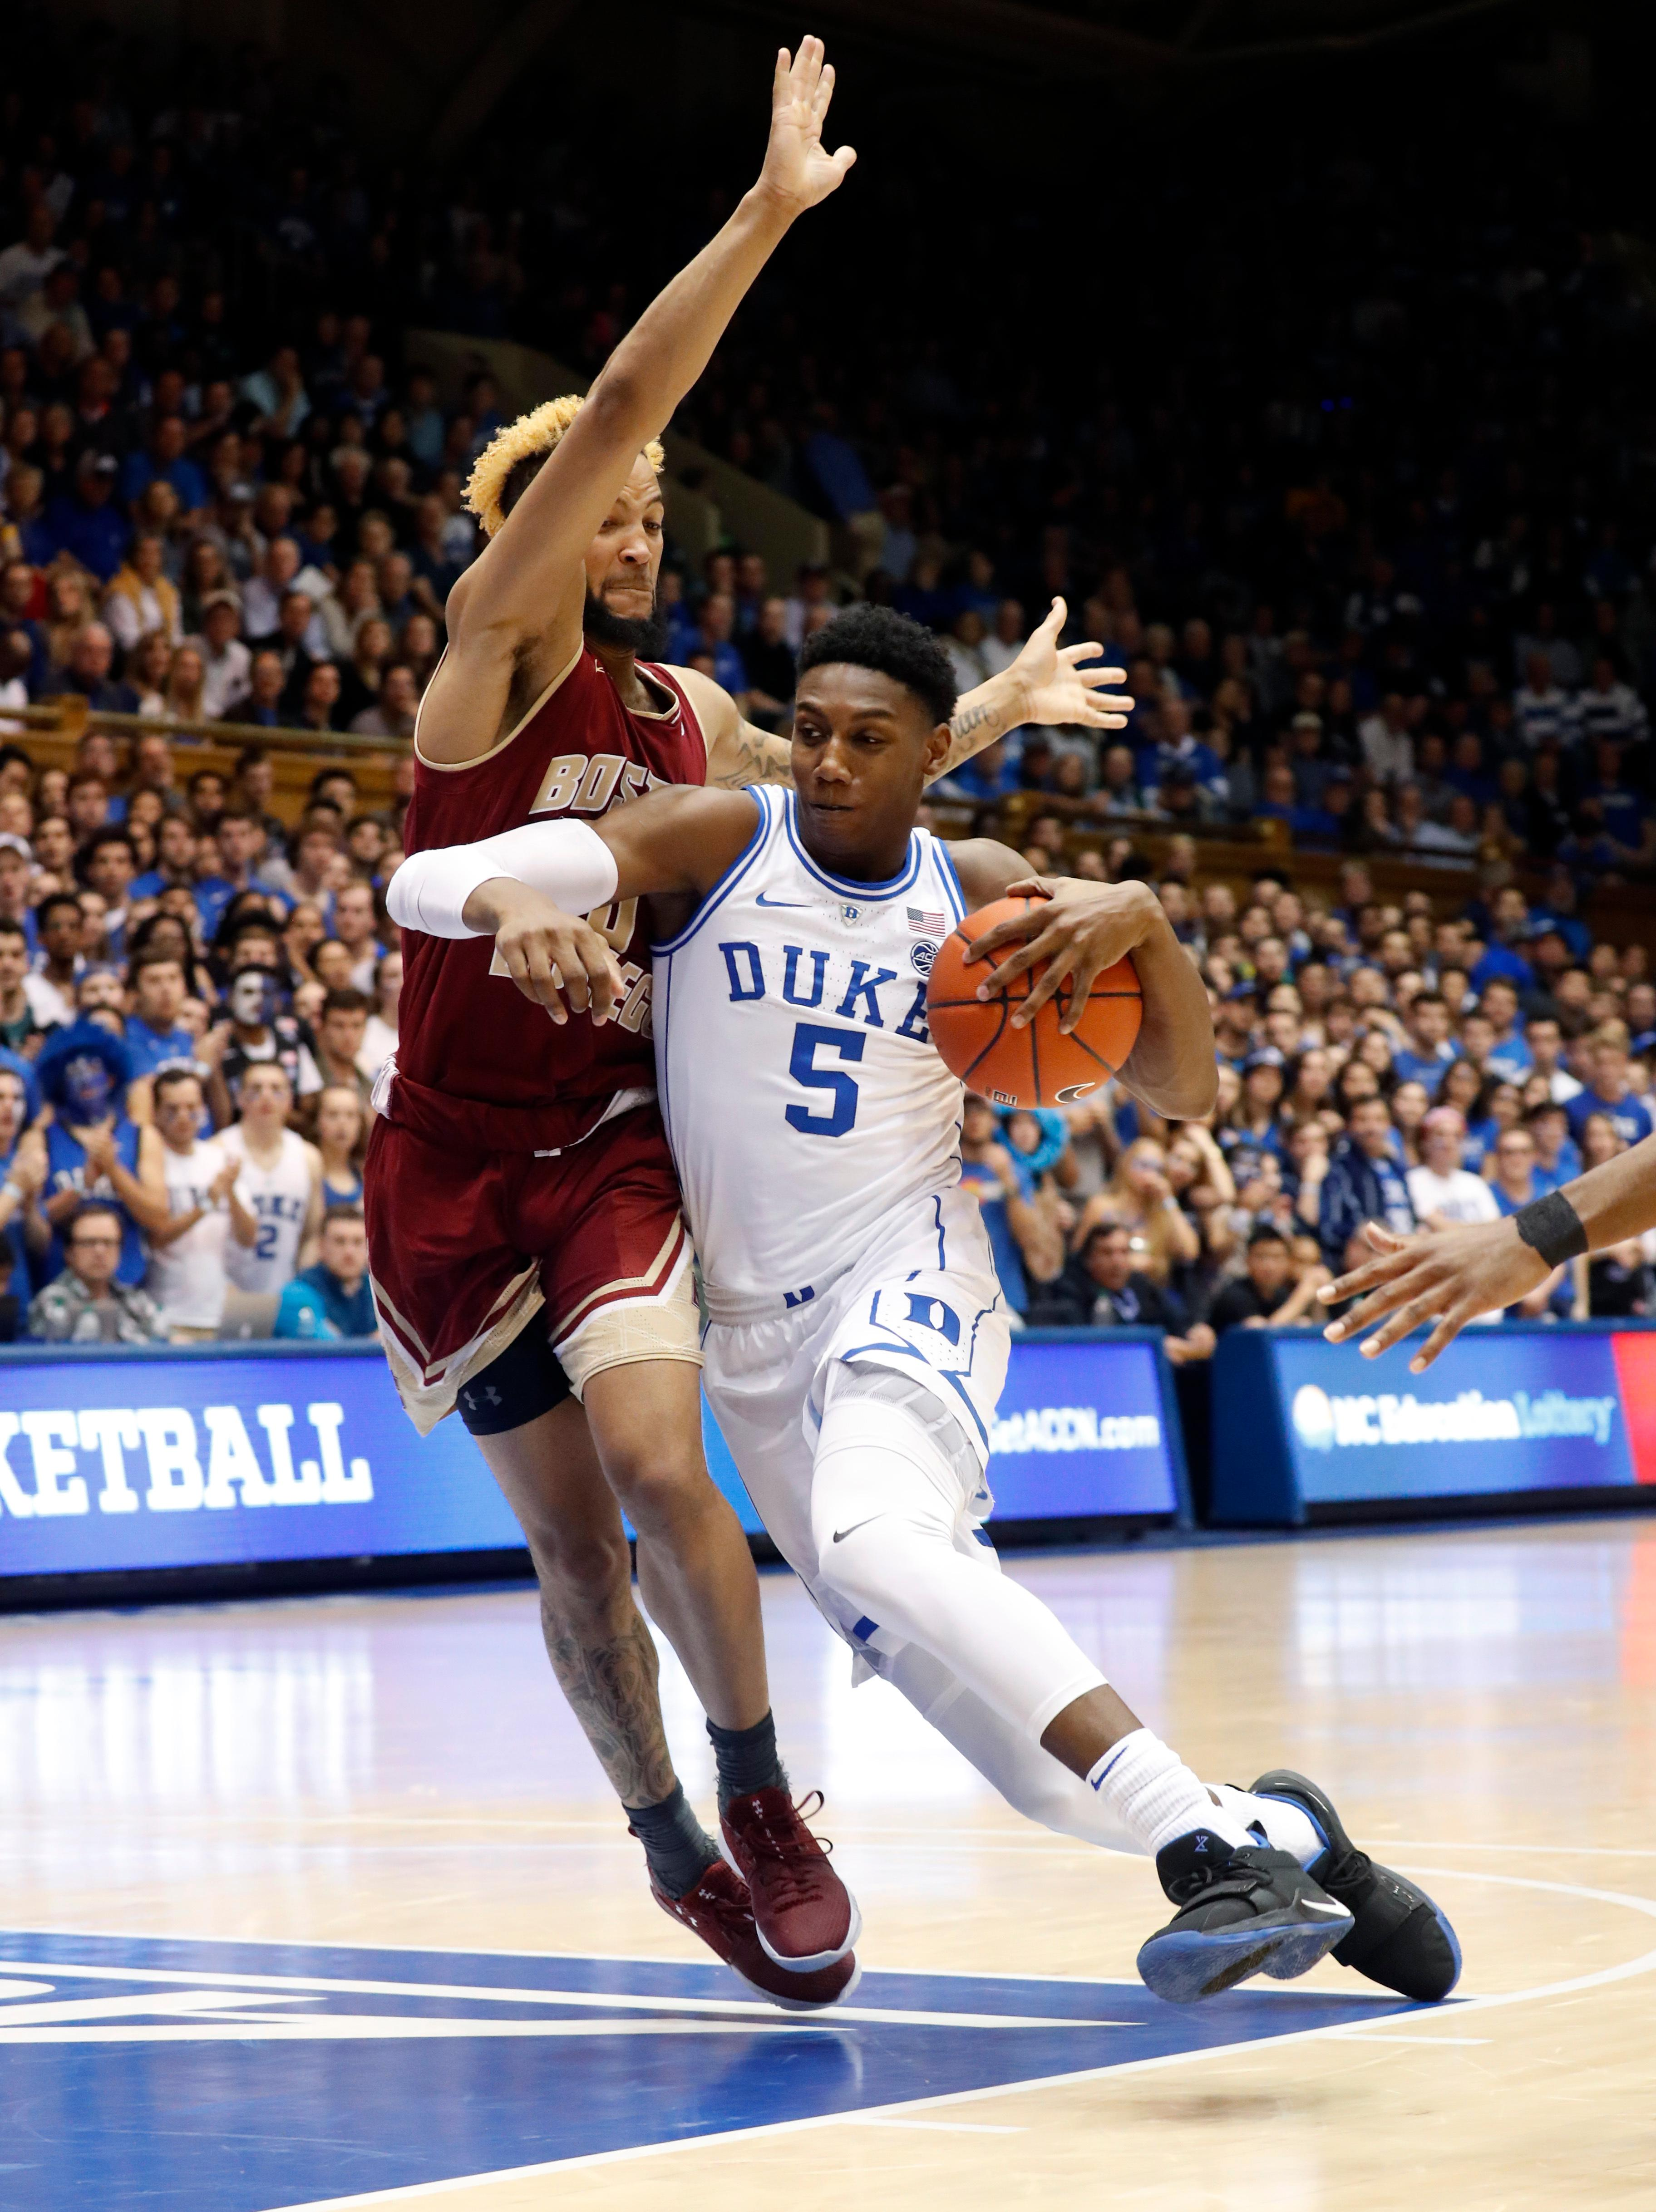 Duke's RJ Barrett (5) is defended by Boston College's Ky Bowman (0) during the second half of an NCAA college basketball game against Duke in Durham, N.C., Tuesday, Feb. 5, 2019. (AP Photo/Chris Seward)